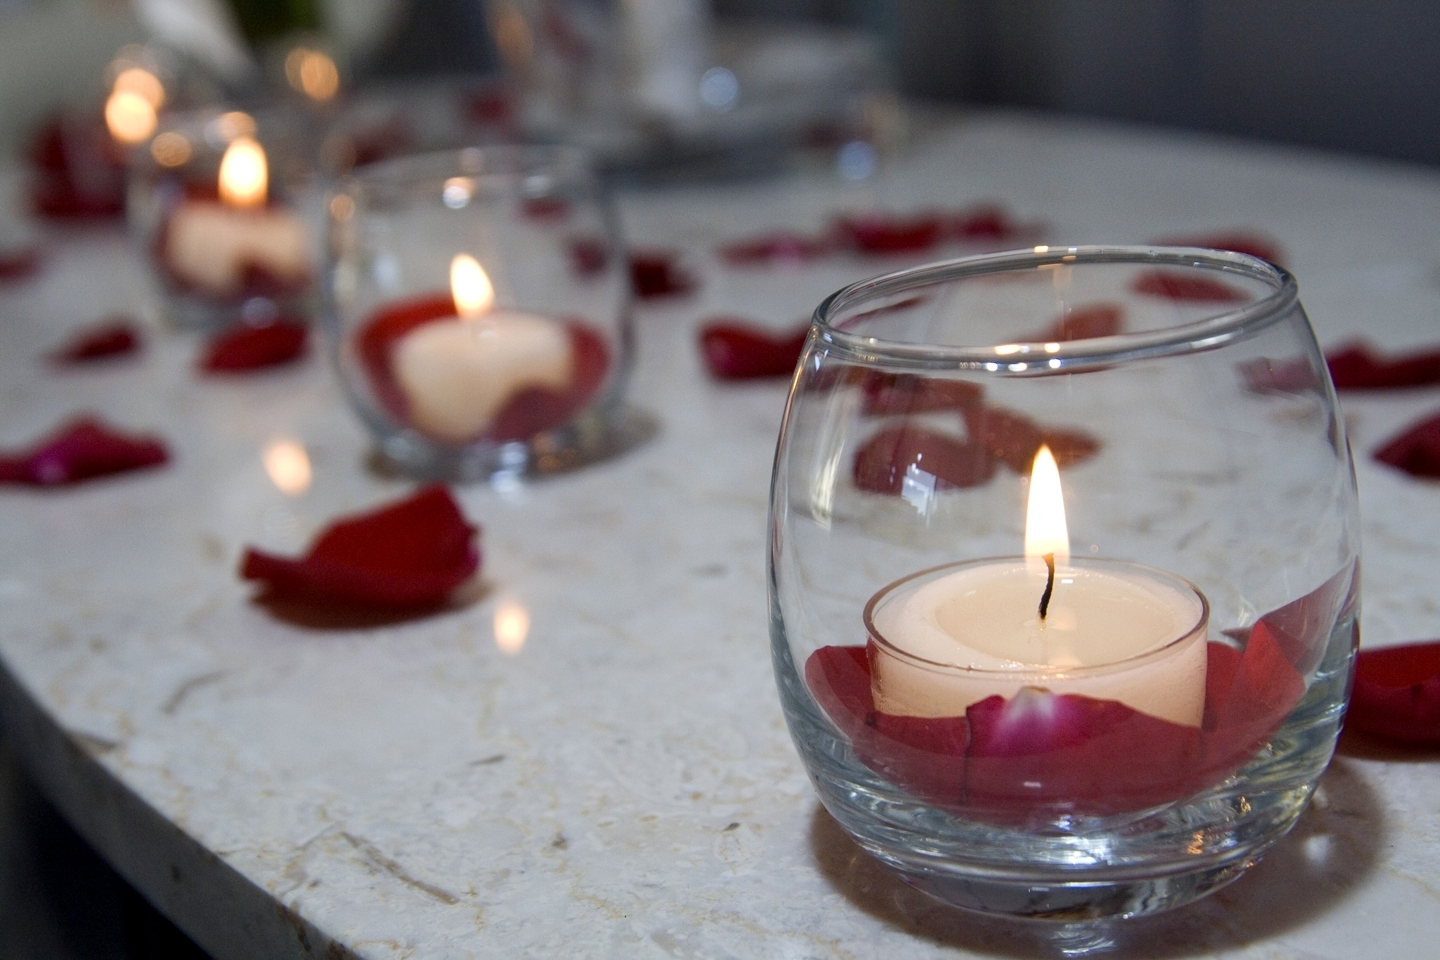 votive candle holders with red rose petals in the bottom. Black Bedroom Furniture Sets. Home Design Ideas